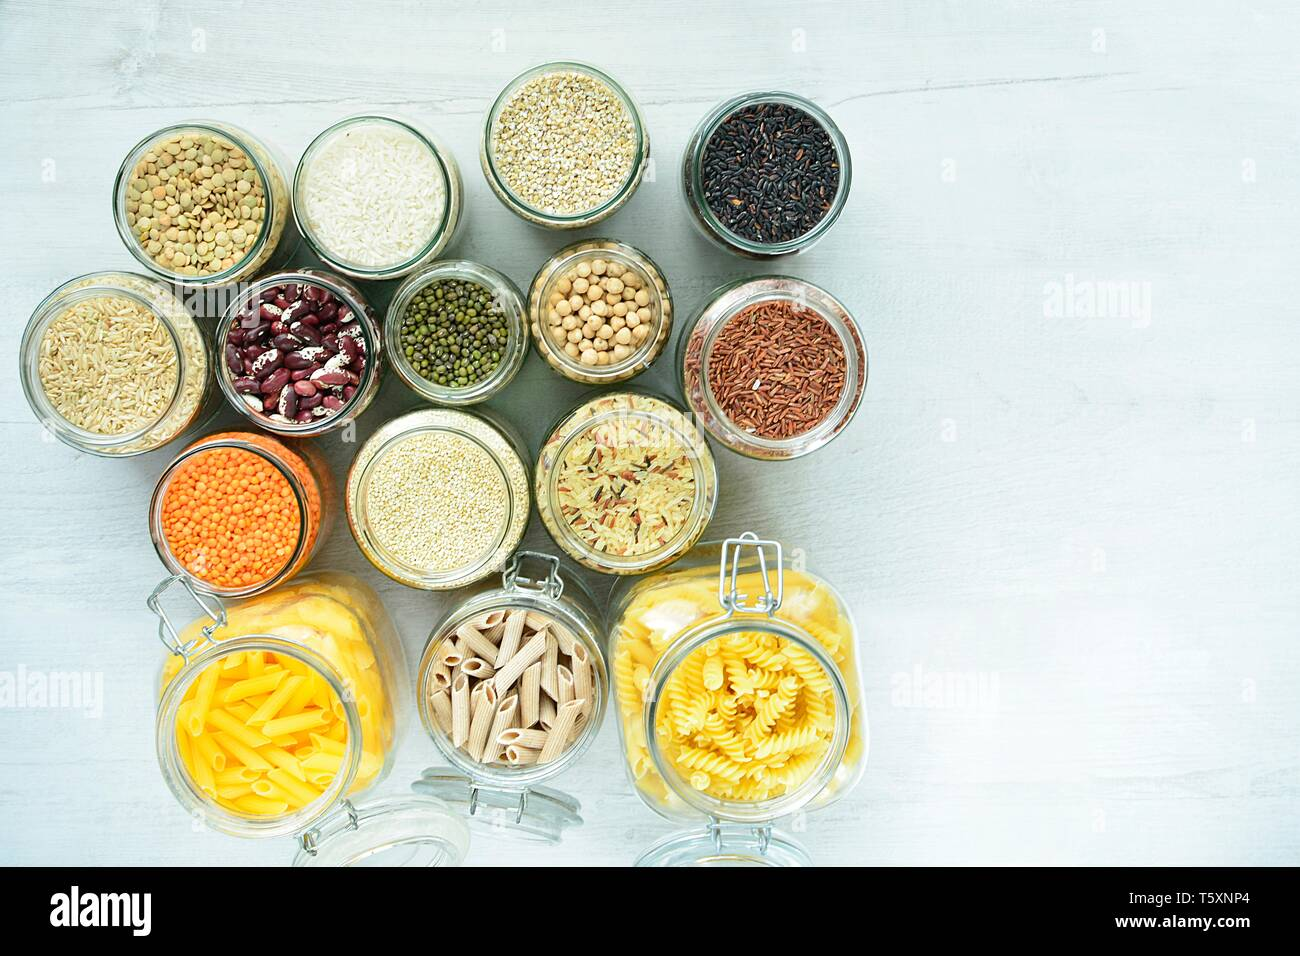 glass bins for storing legumes and pasta which are zero waste - Stock Image